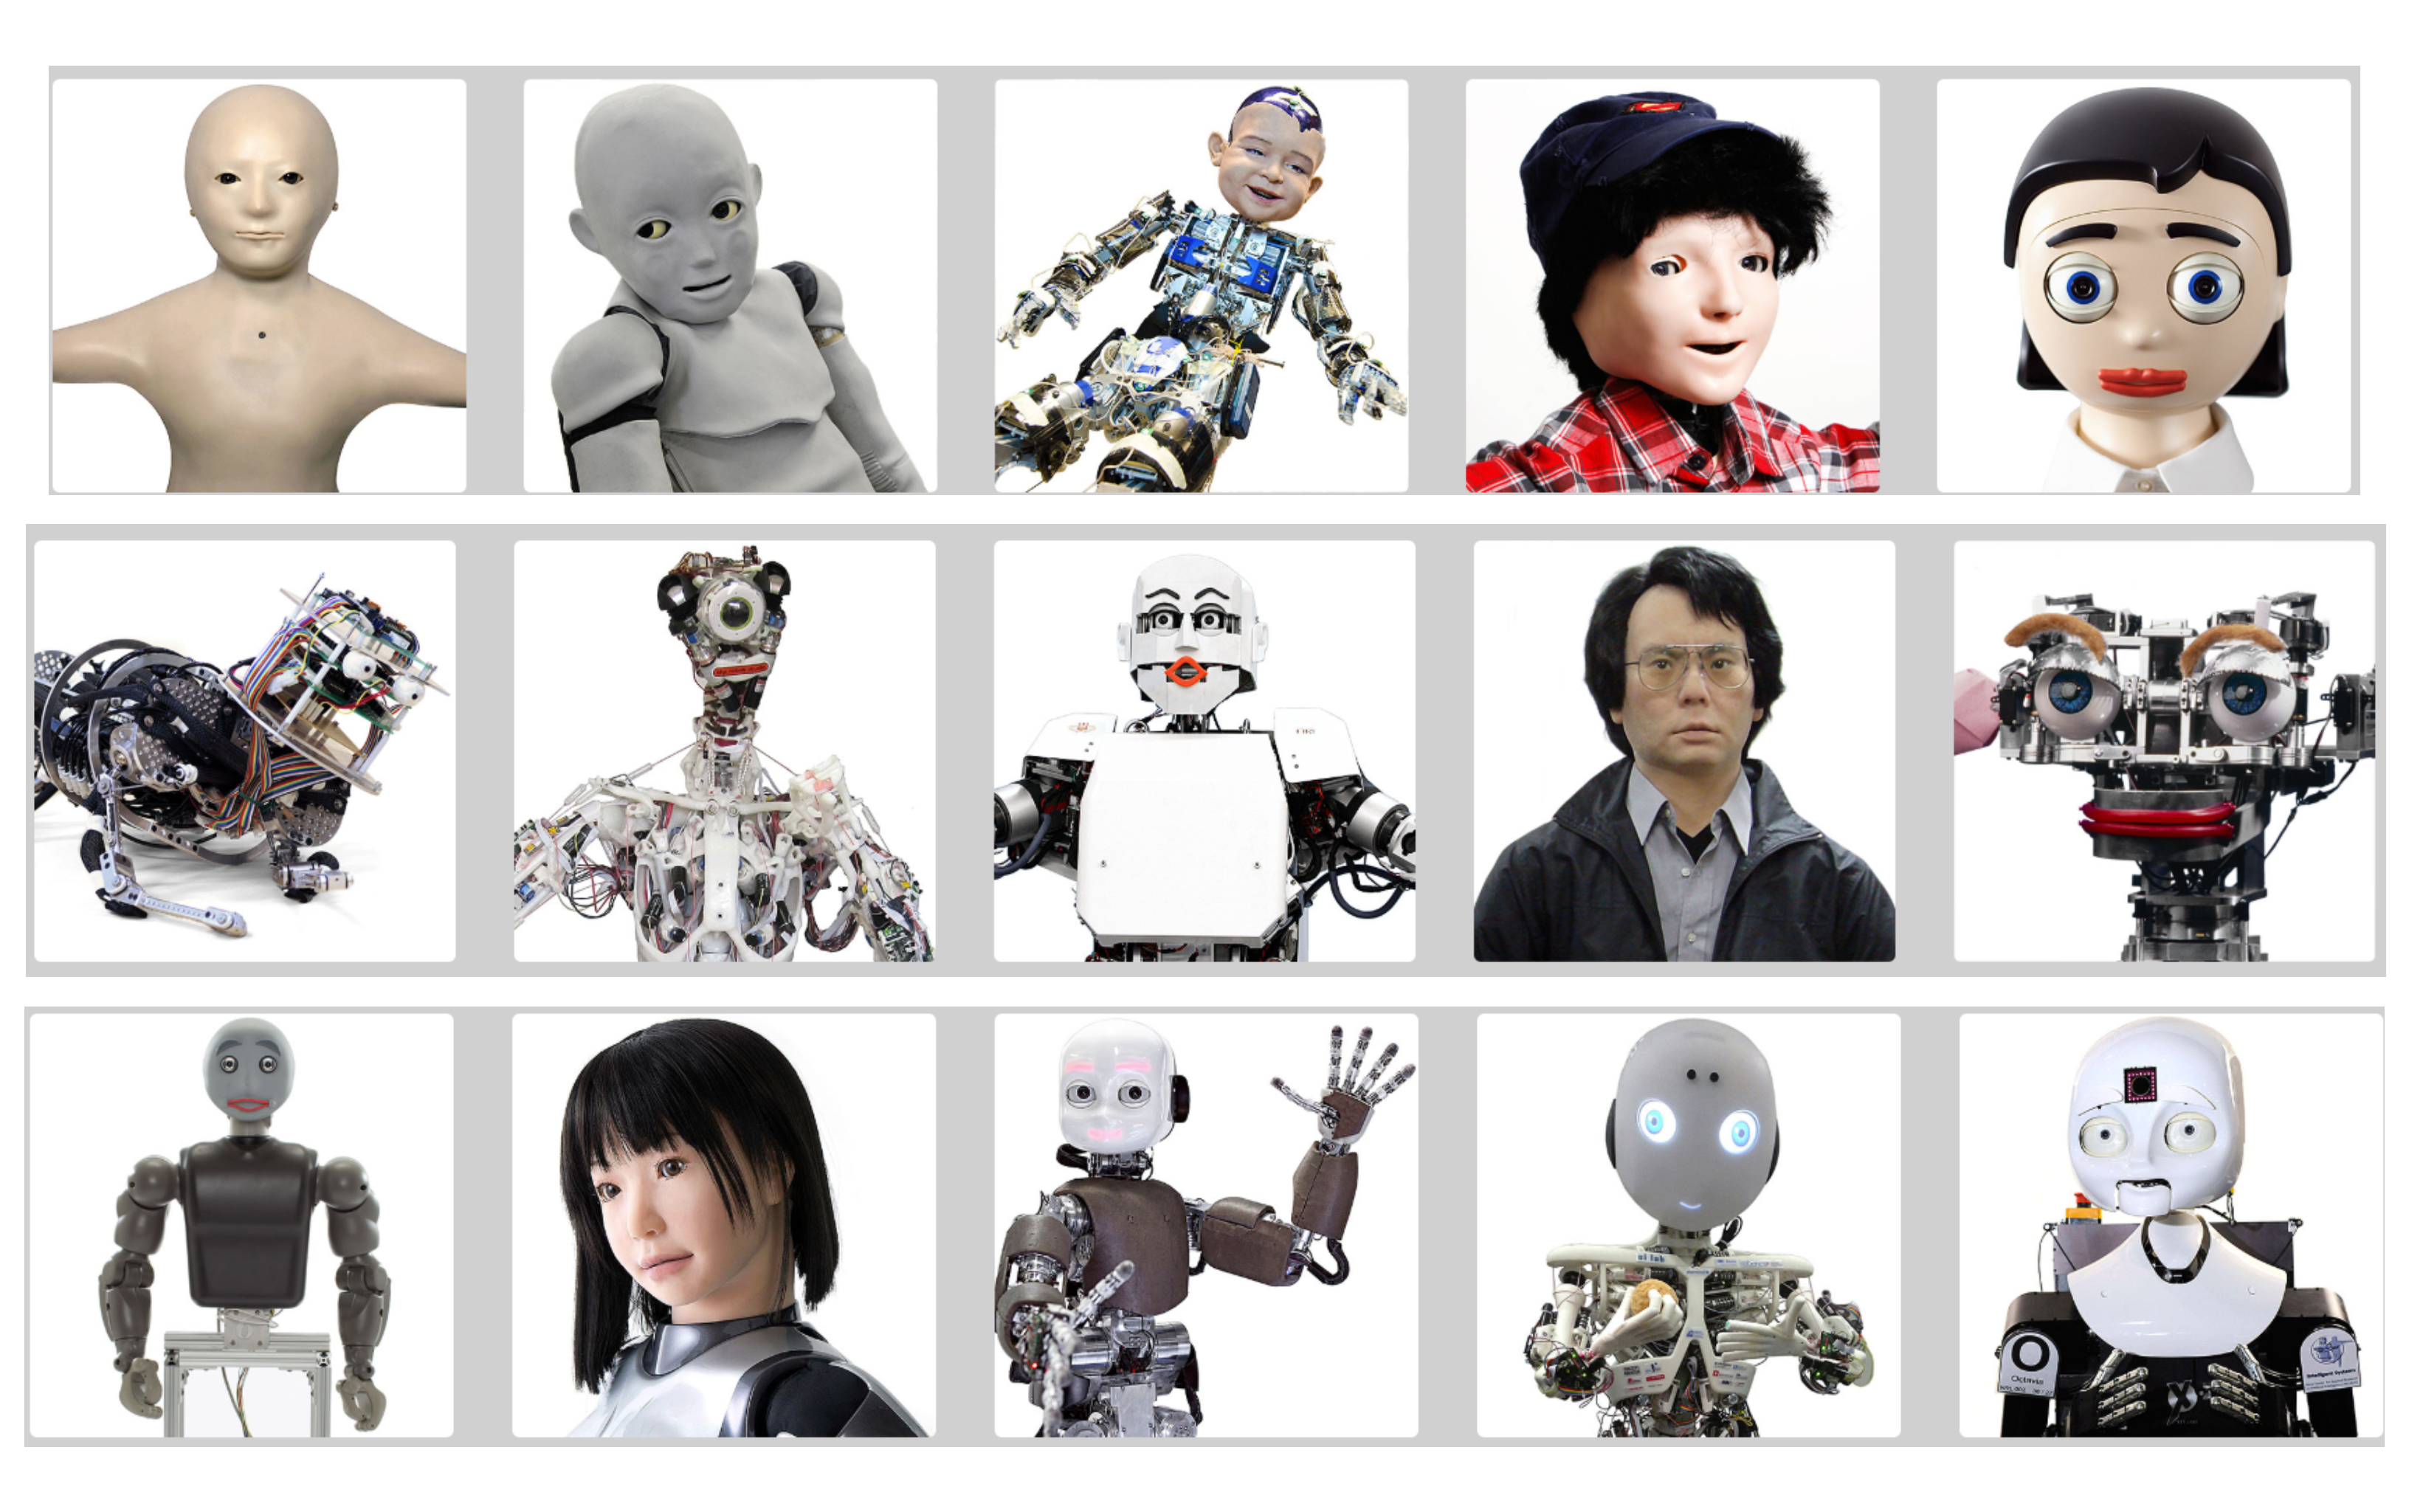 IEEE Ranks Robot Creepiness: Sophia Is Not Even Close to the Top